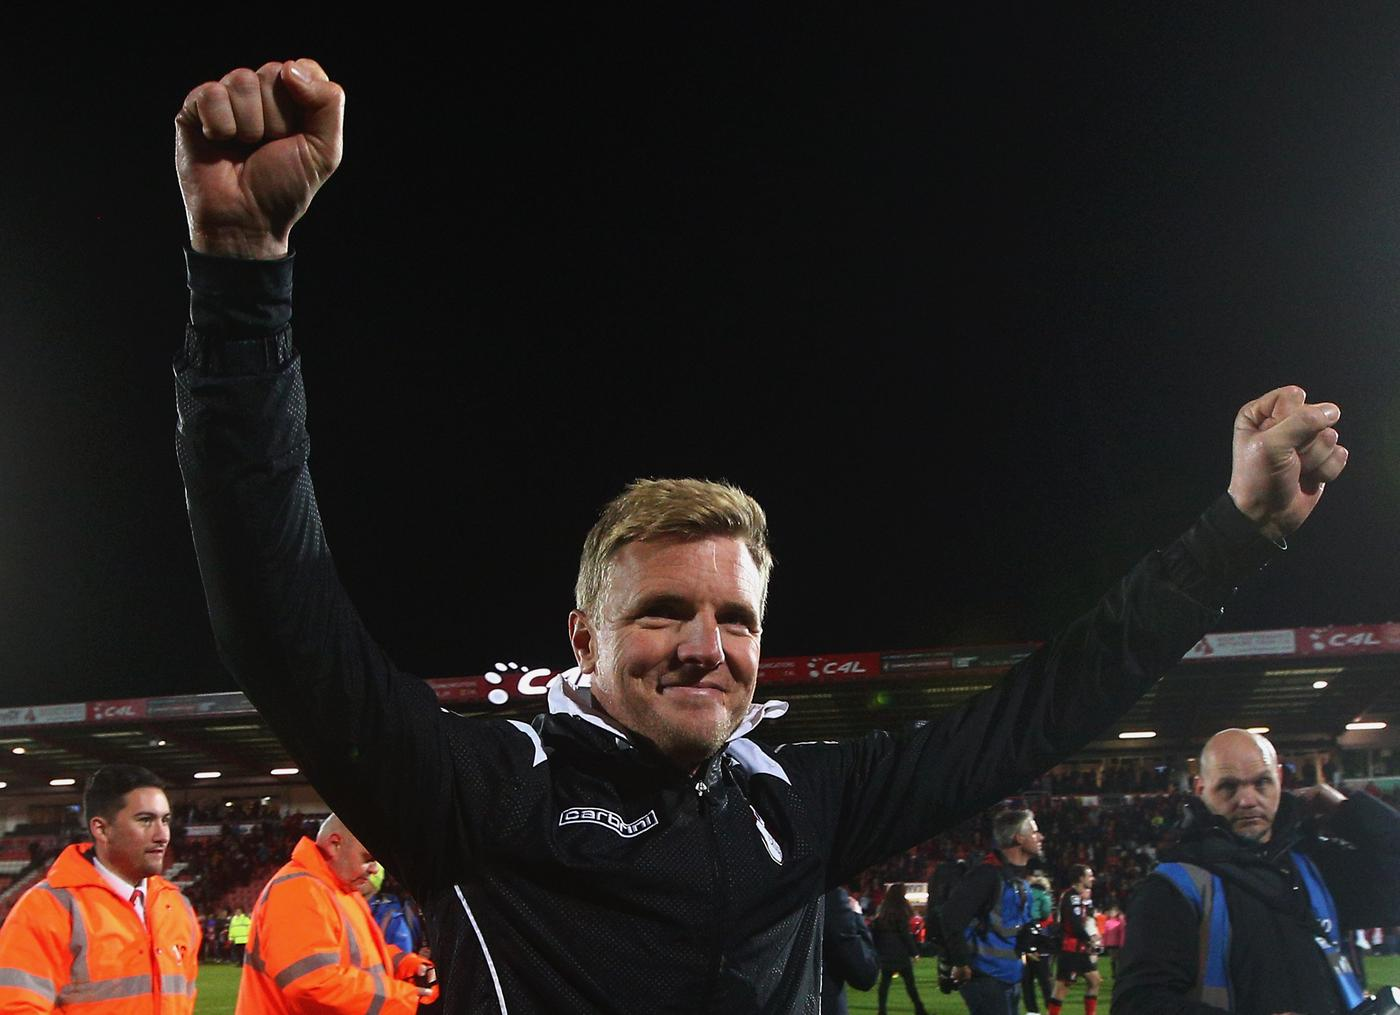 Arsenal must turn to Bournemouth hero Eddie Howe as they prepare for life after Arsene Wenger